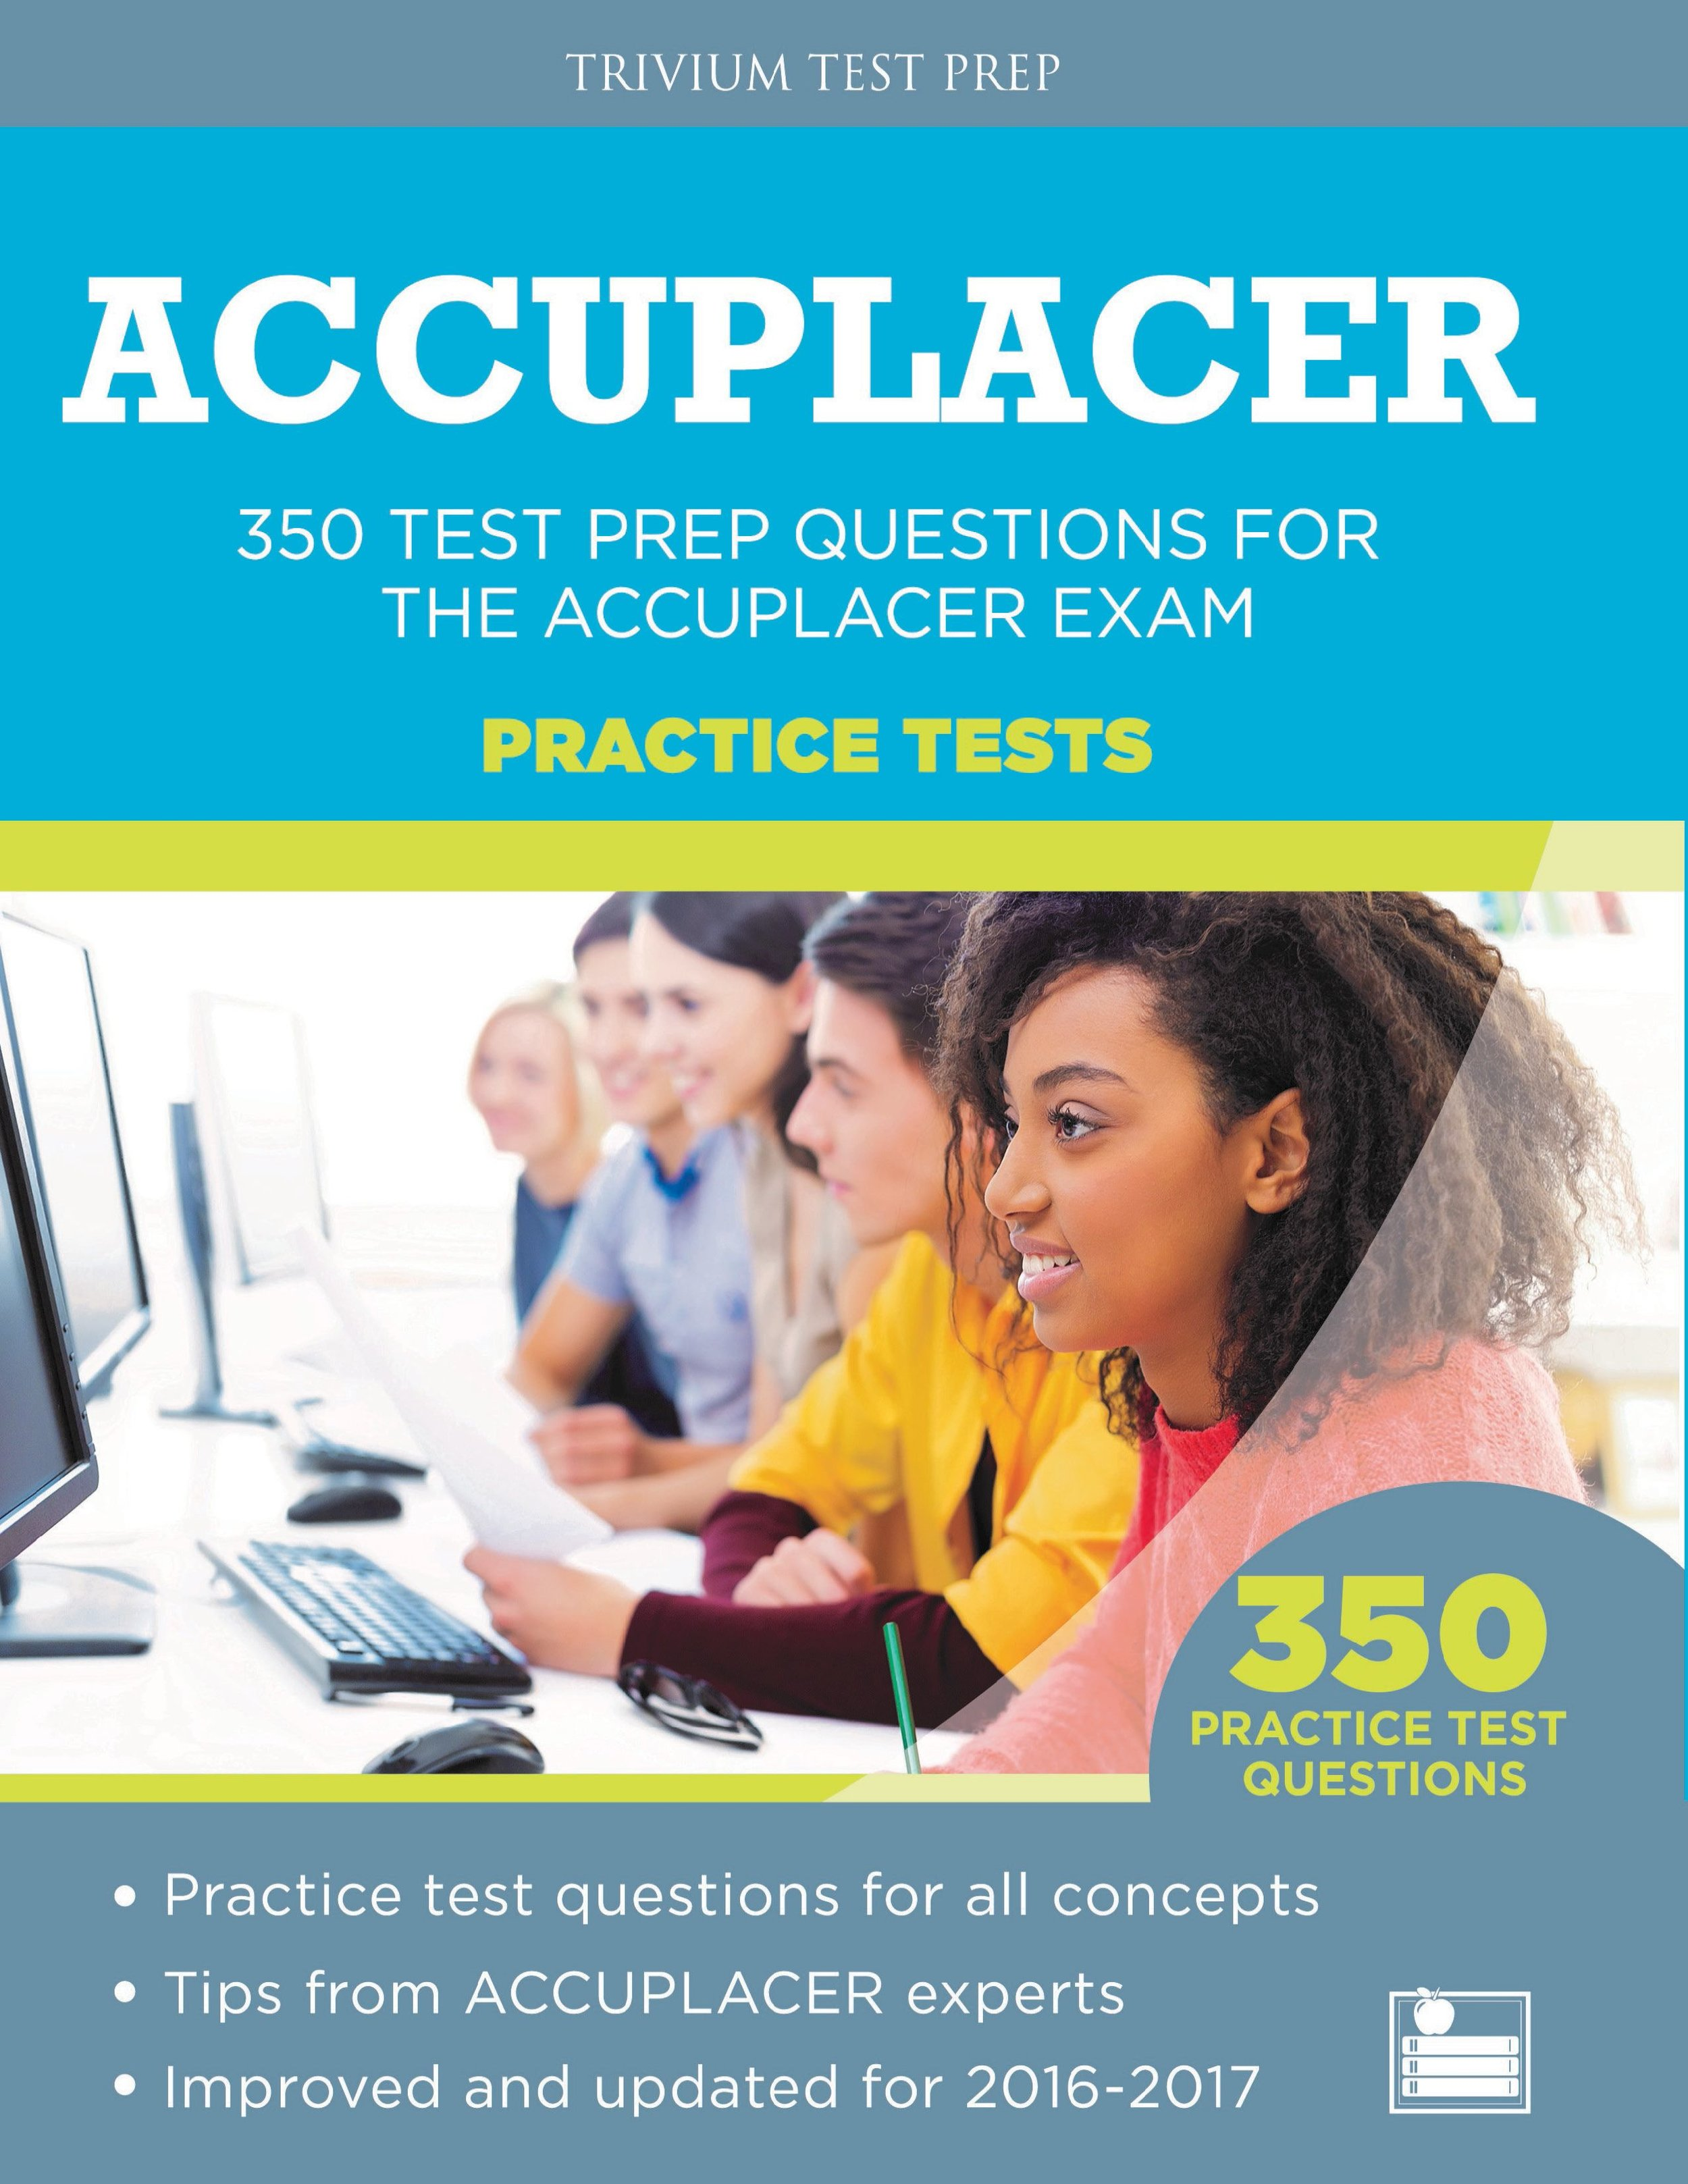 Accuplacer Practice Tests